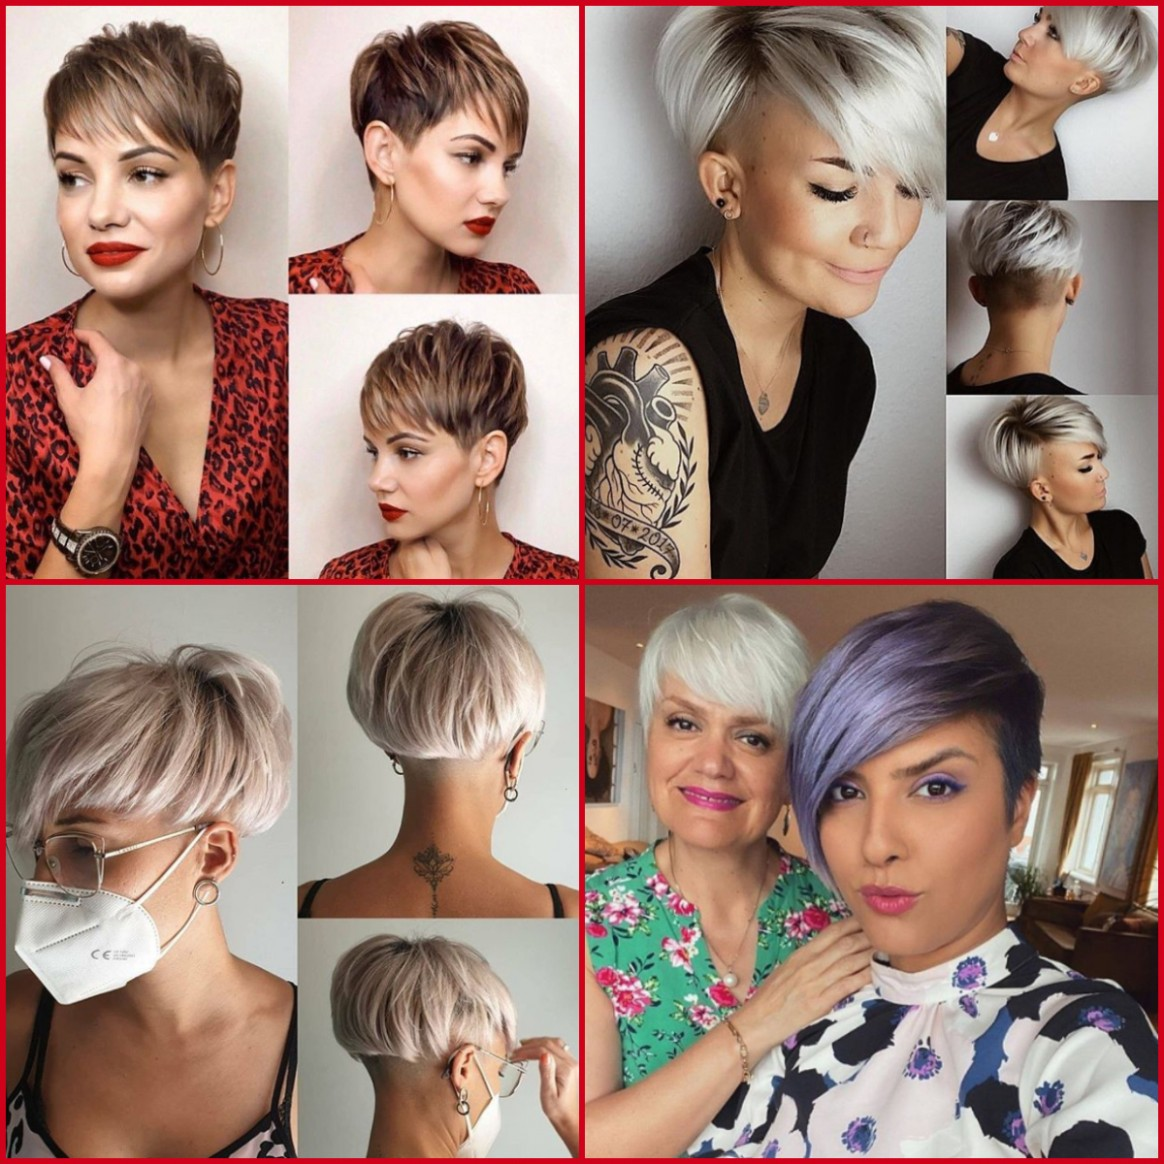 12 Most Stylish New Year Pixie Haircuts 12 Best Short Hairstyles Best Pixie Cuts 2021